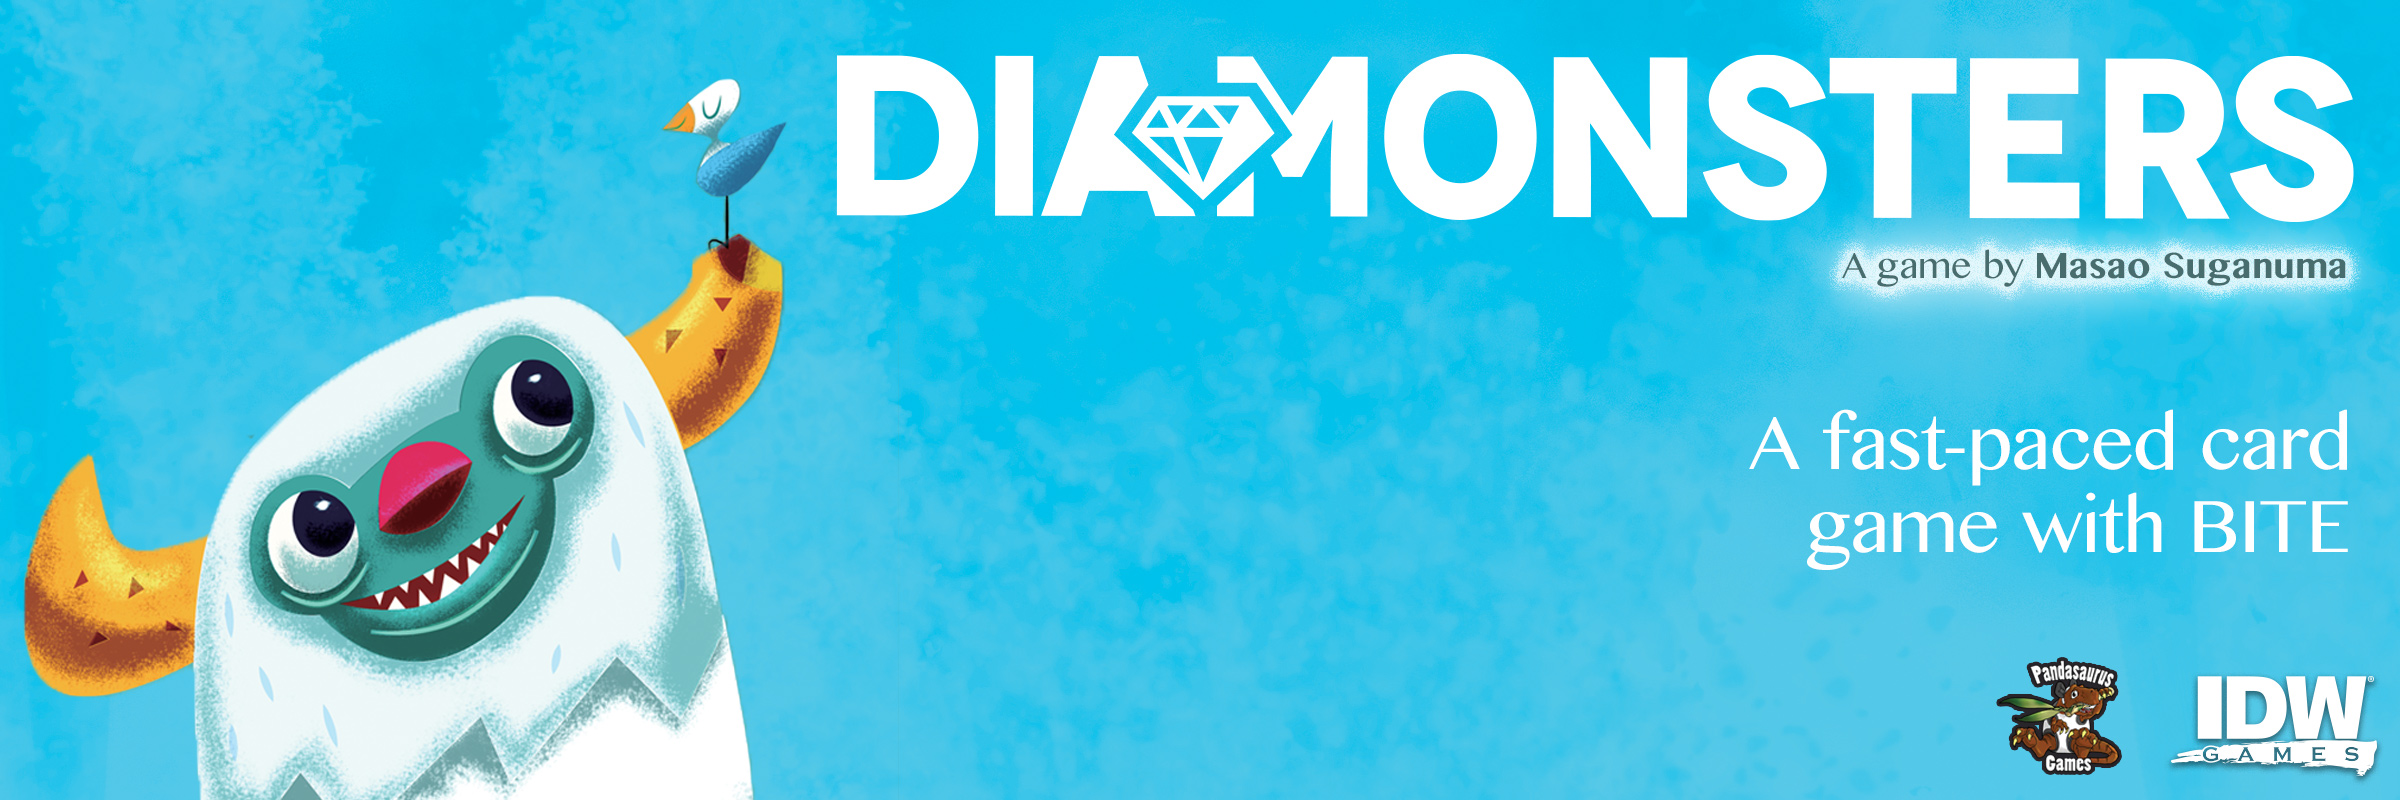 diamonsters-banner